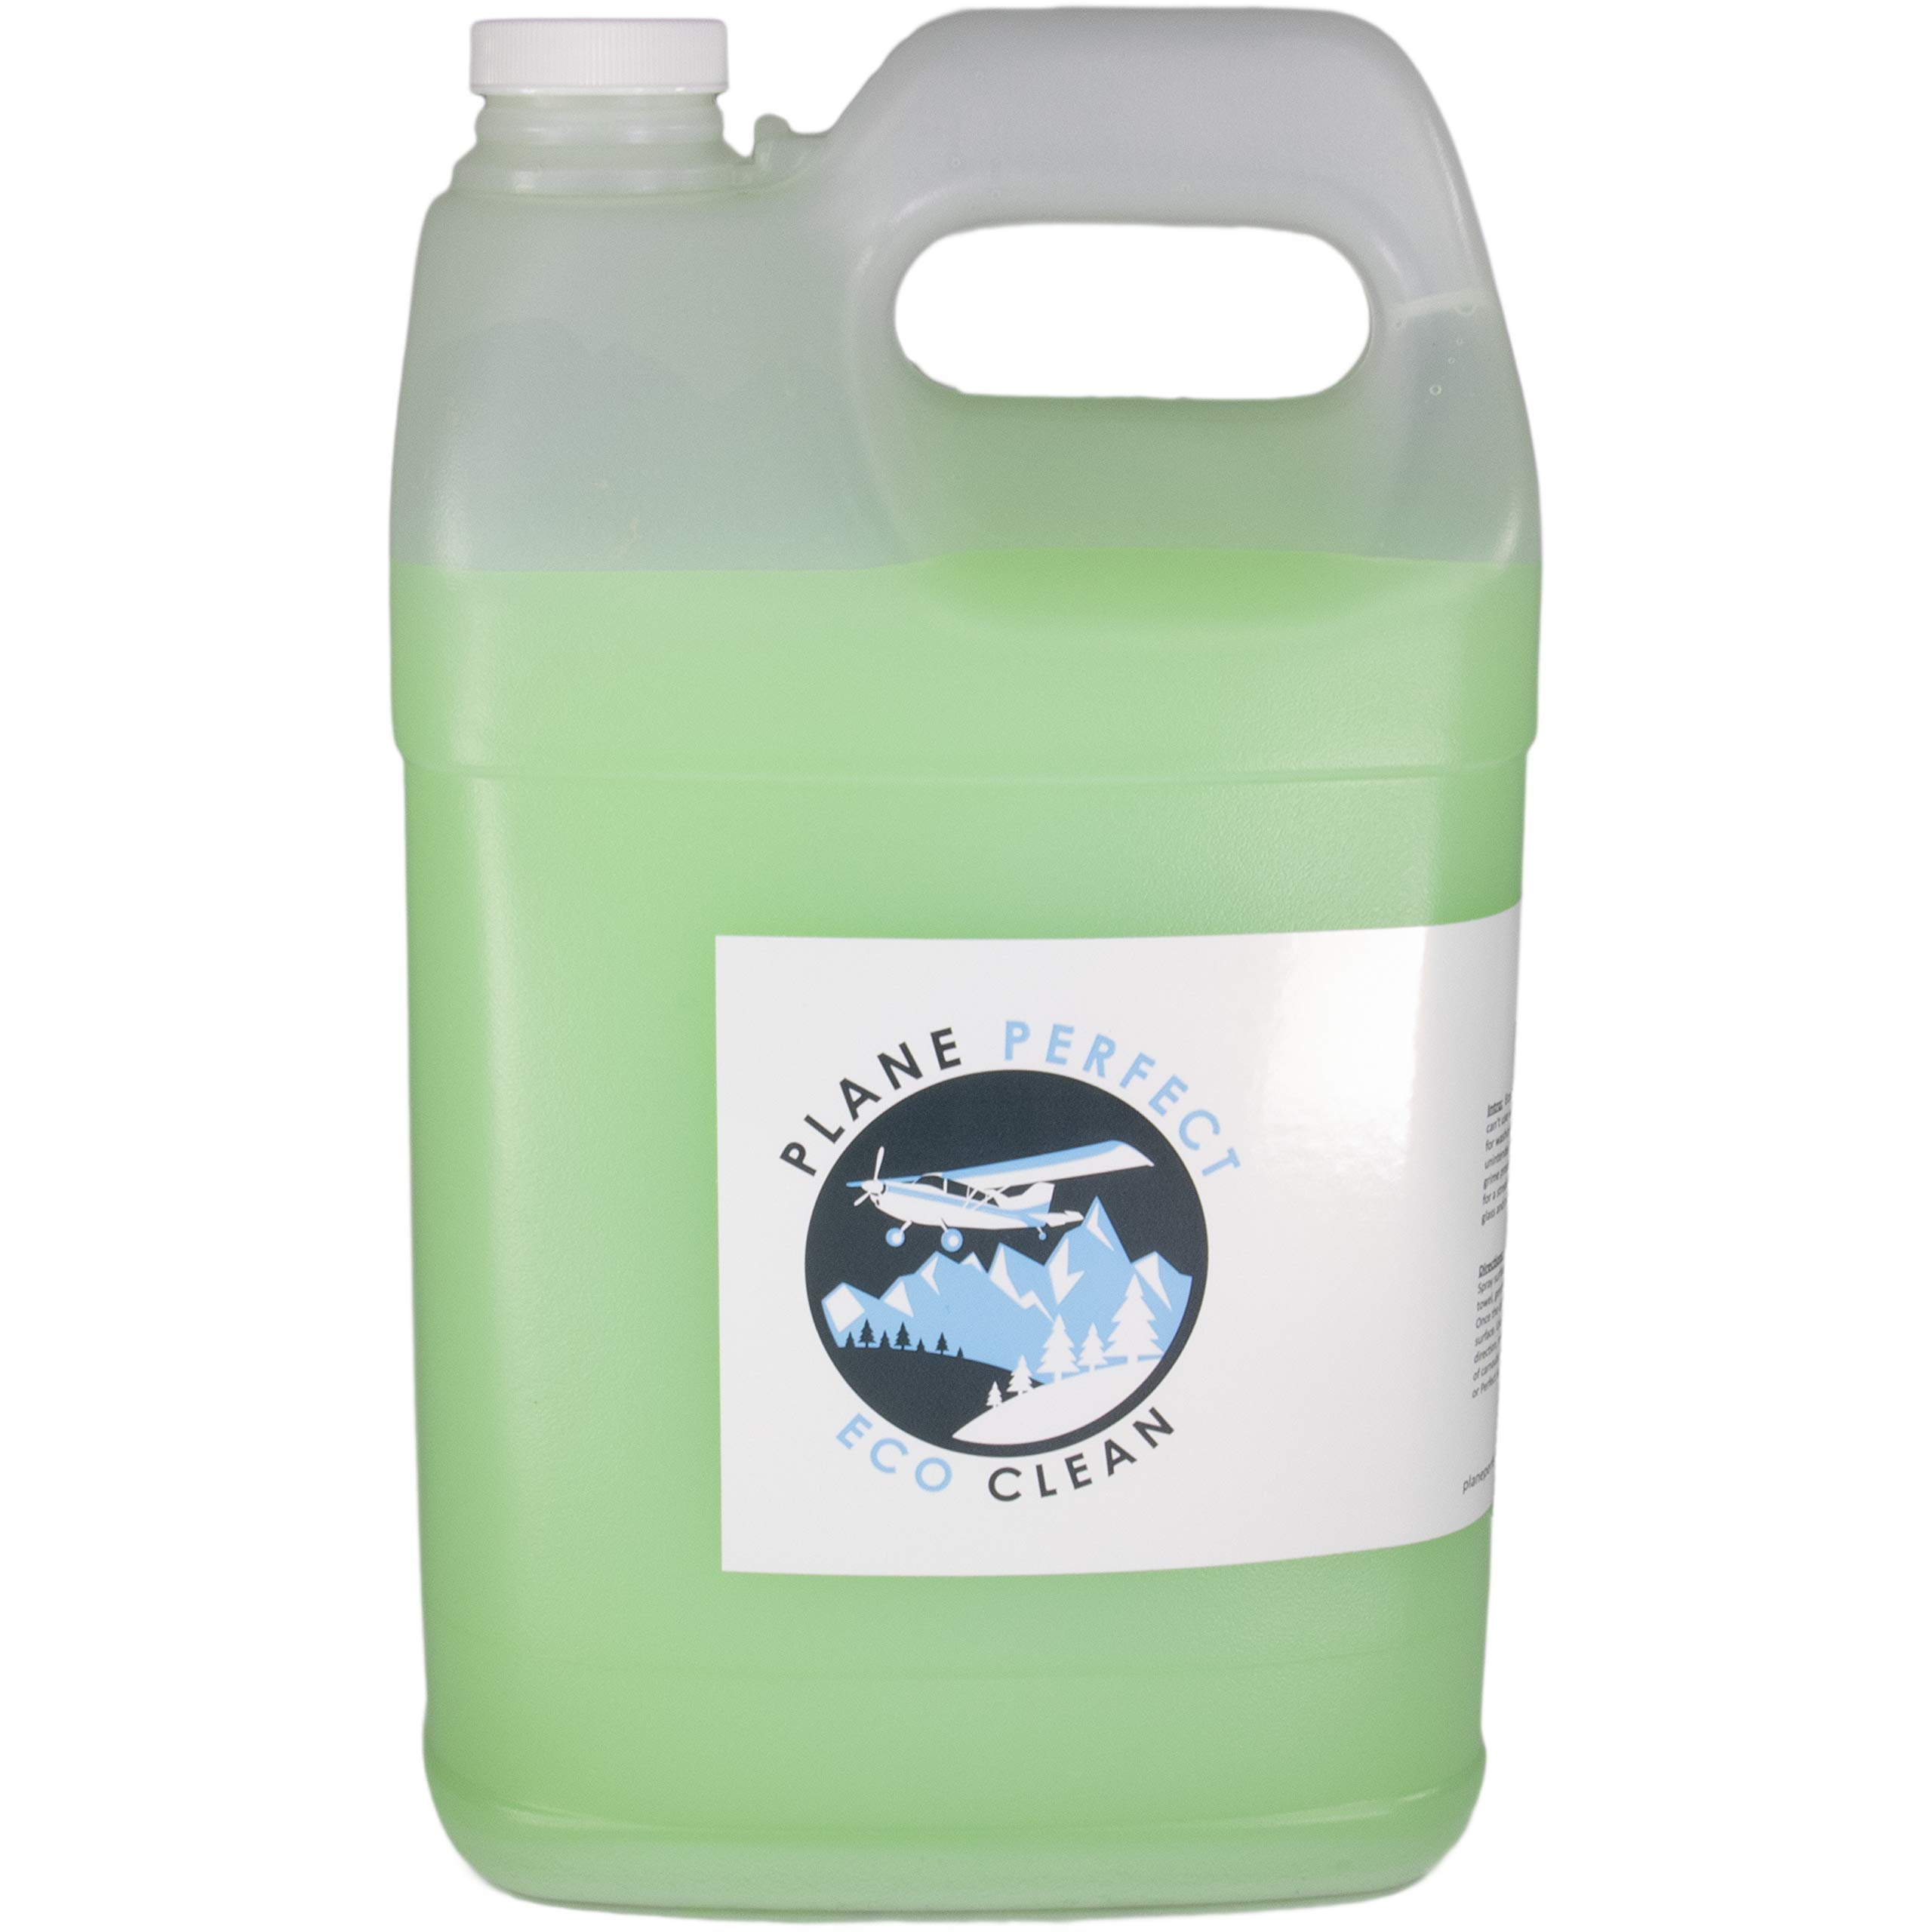 EcoClean - Waterless Airplane Cleaner (Gallon Refill)